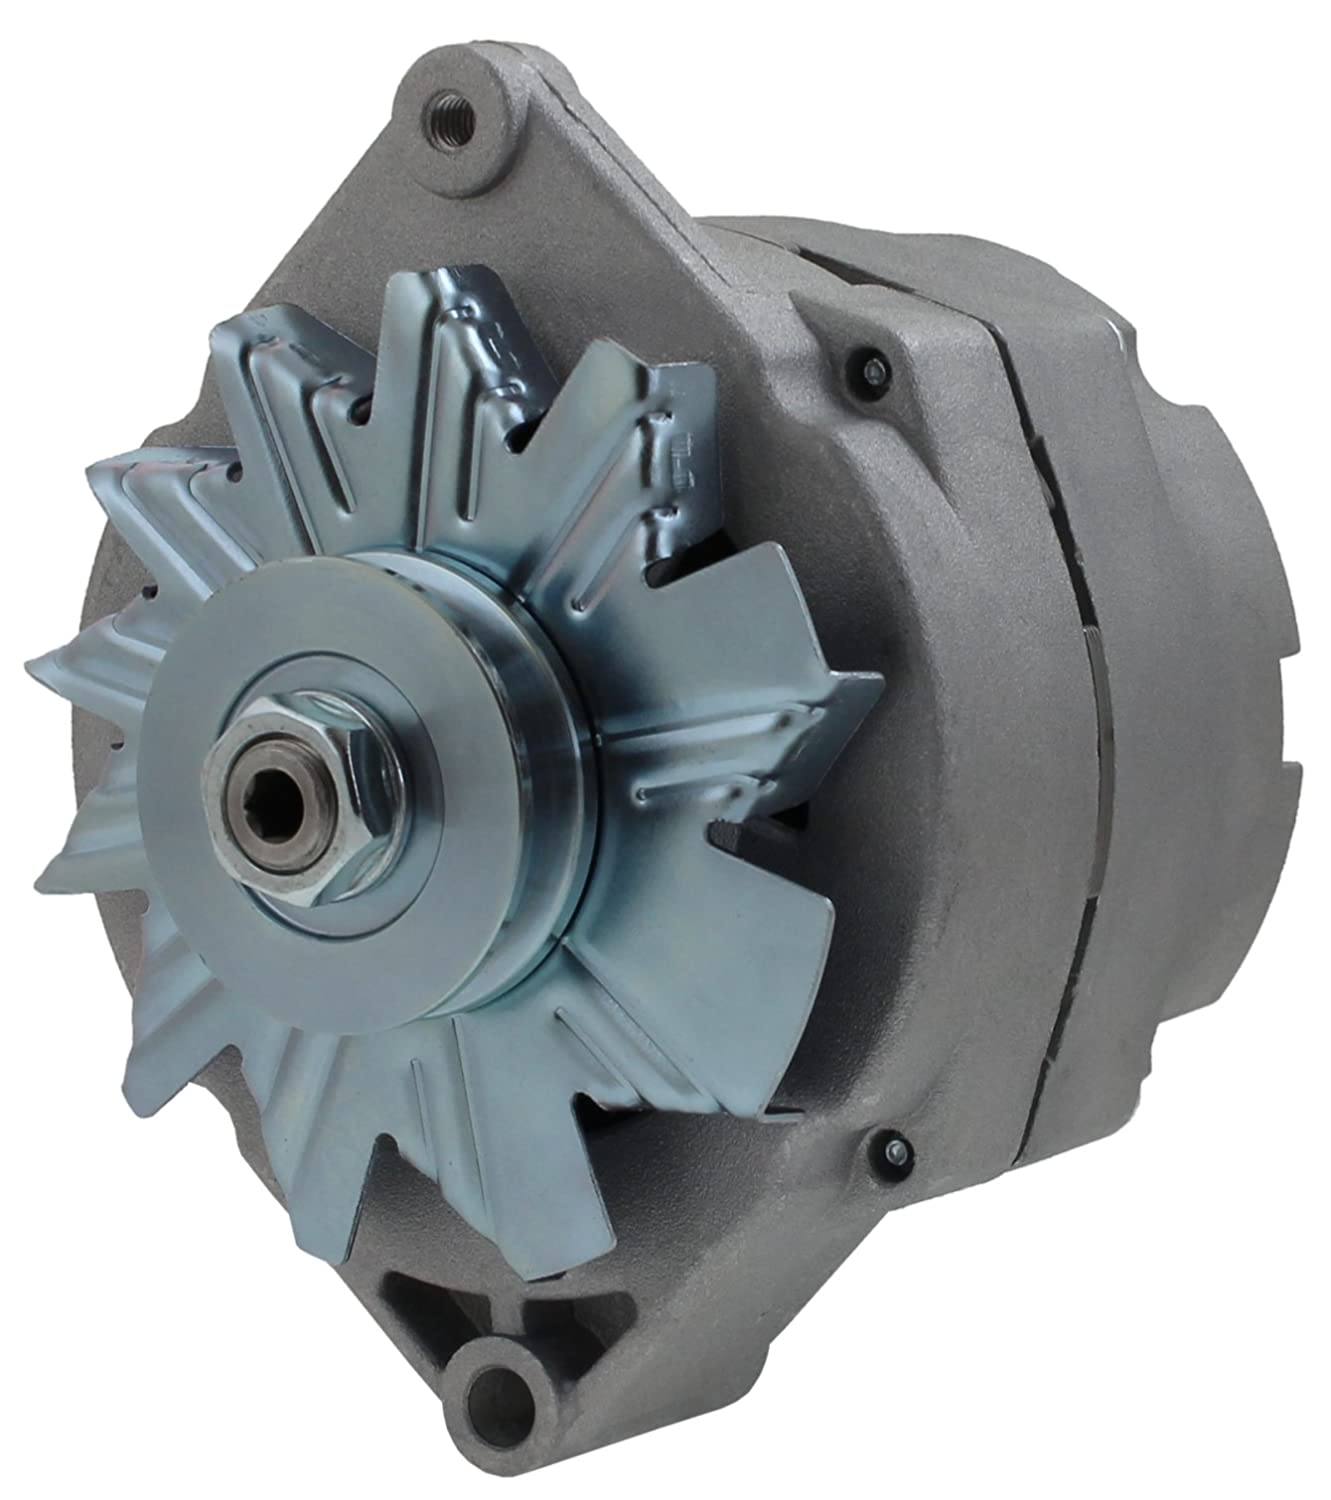 Amazon.com: New GM 1 wire Self Exciting Alternator 12 Volt 120A! Low ...